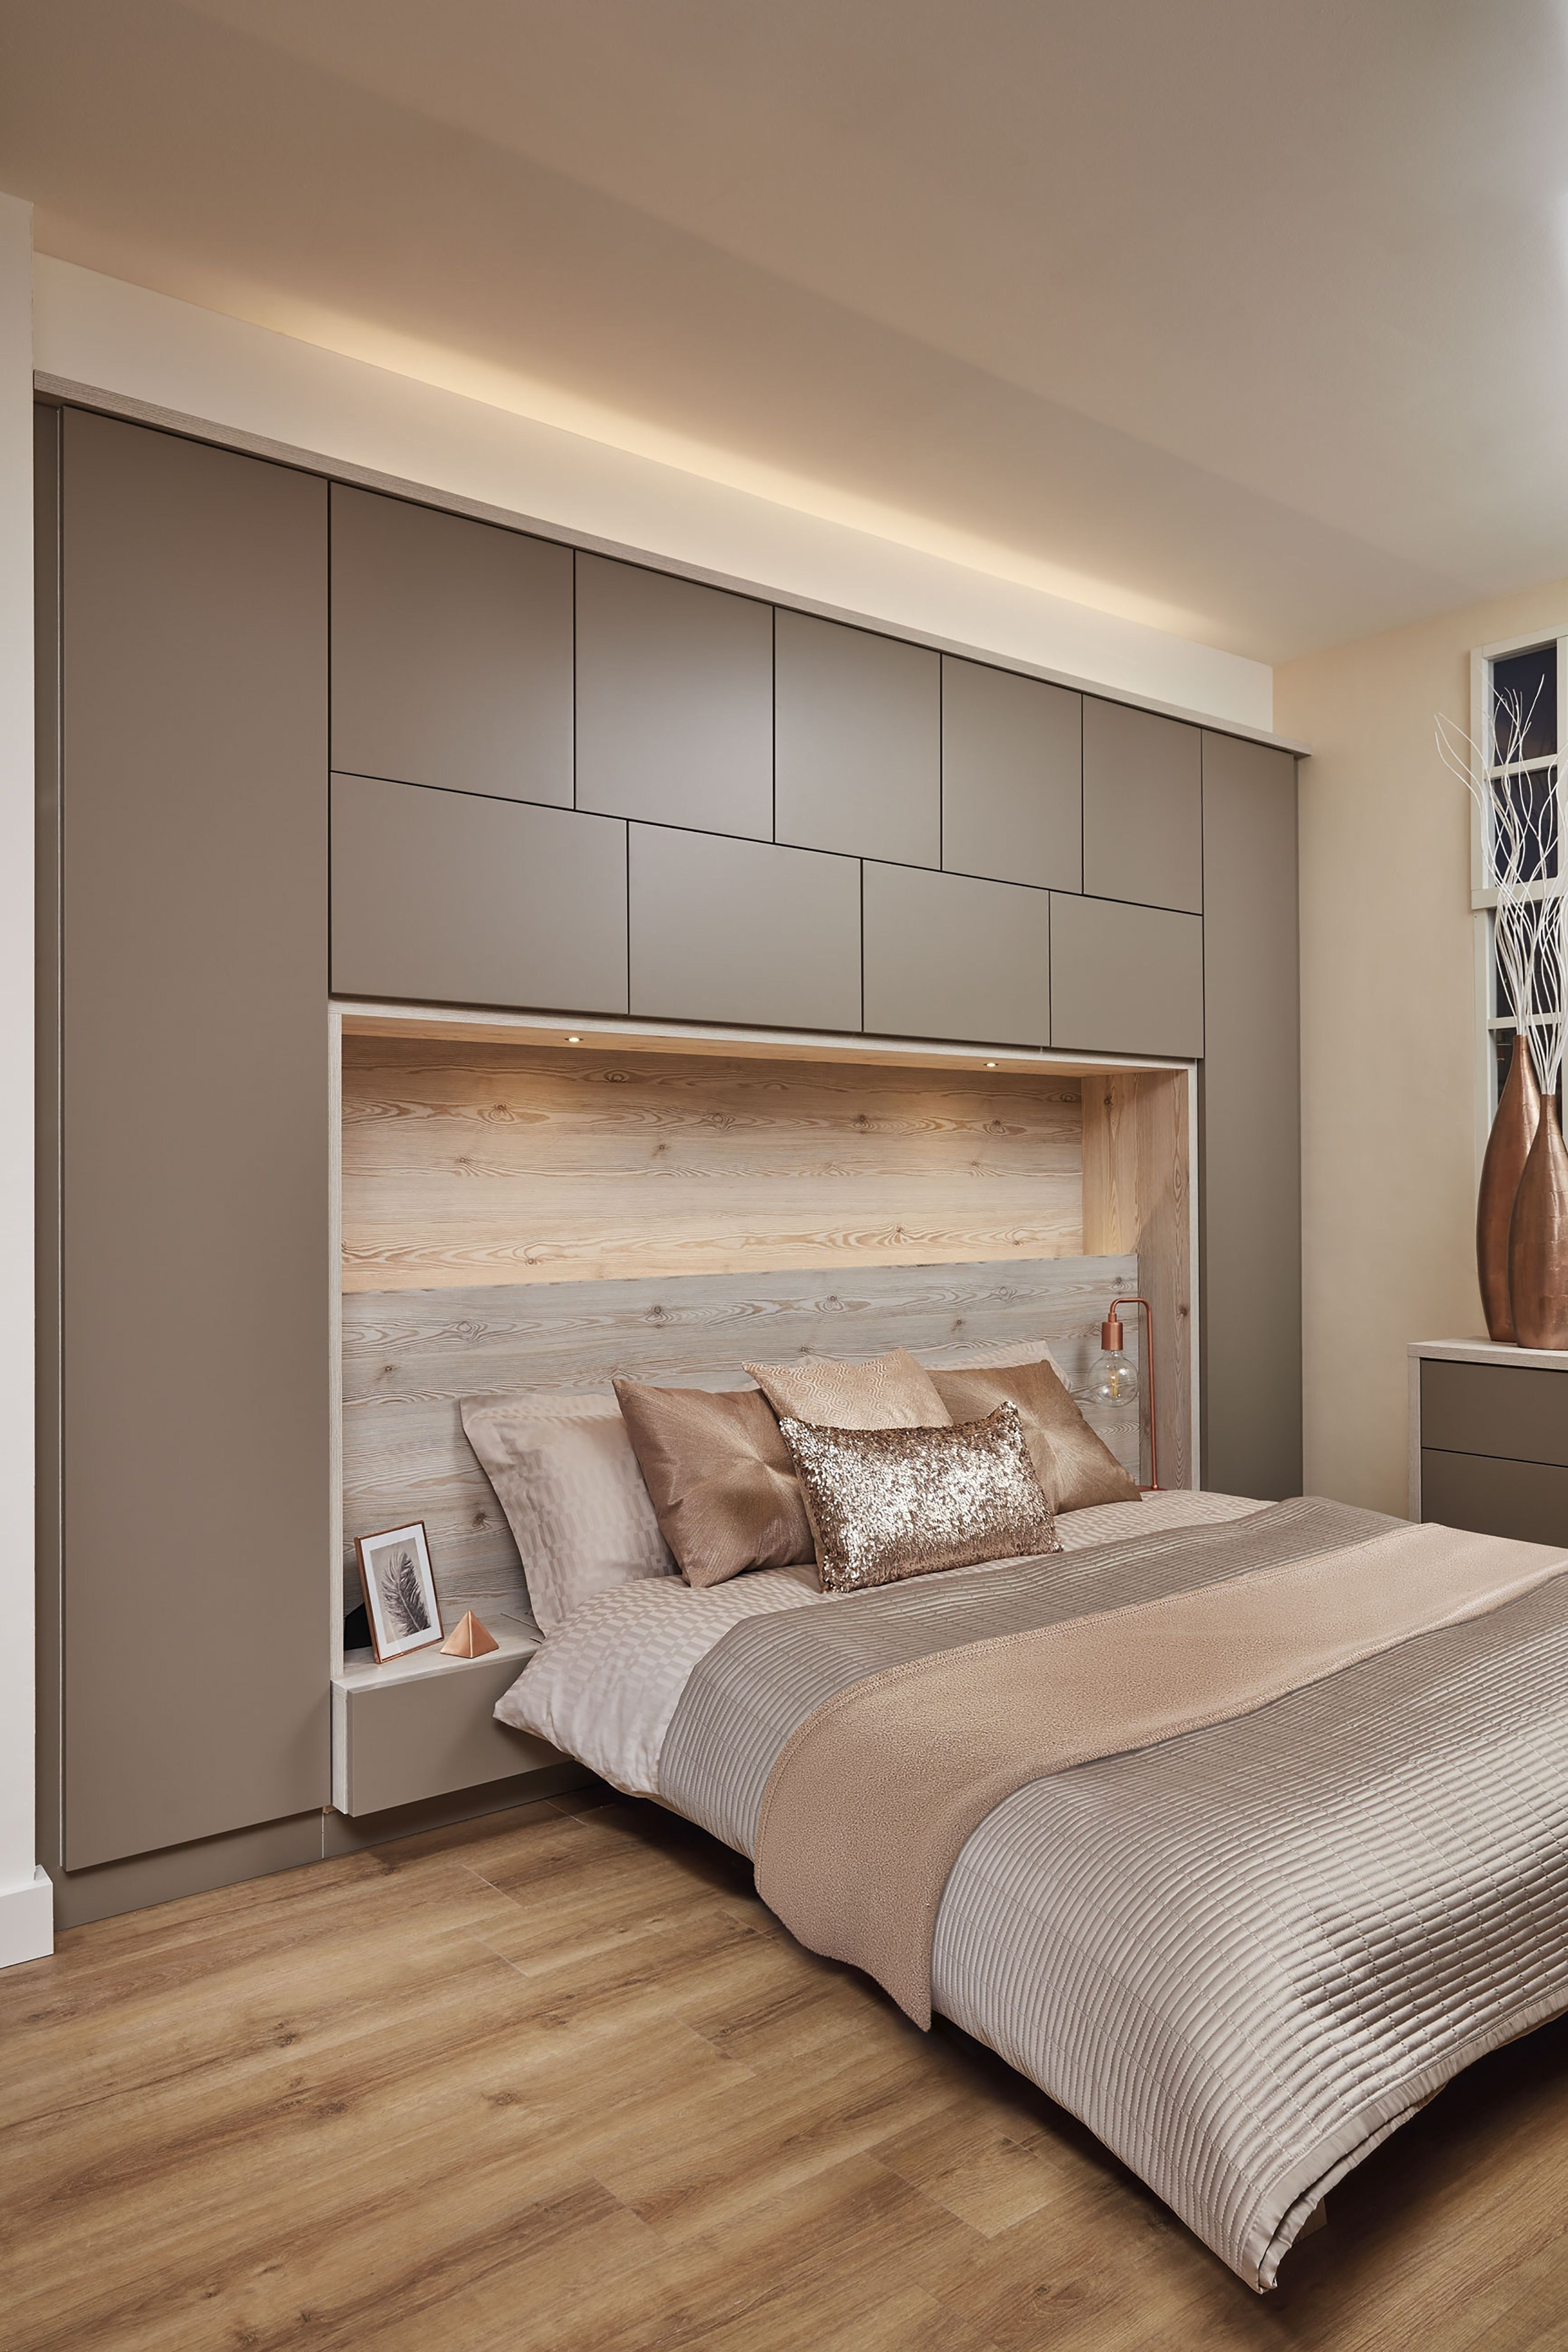 28 Interesting Rustic Storage Bed Design Ideas In 2020 With Images Modern Master Bedroom Design Small Master Bedroom Simple Bedroom